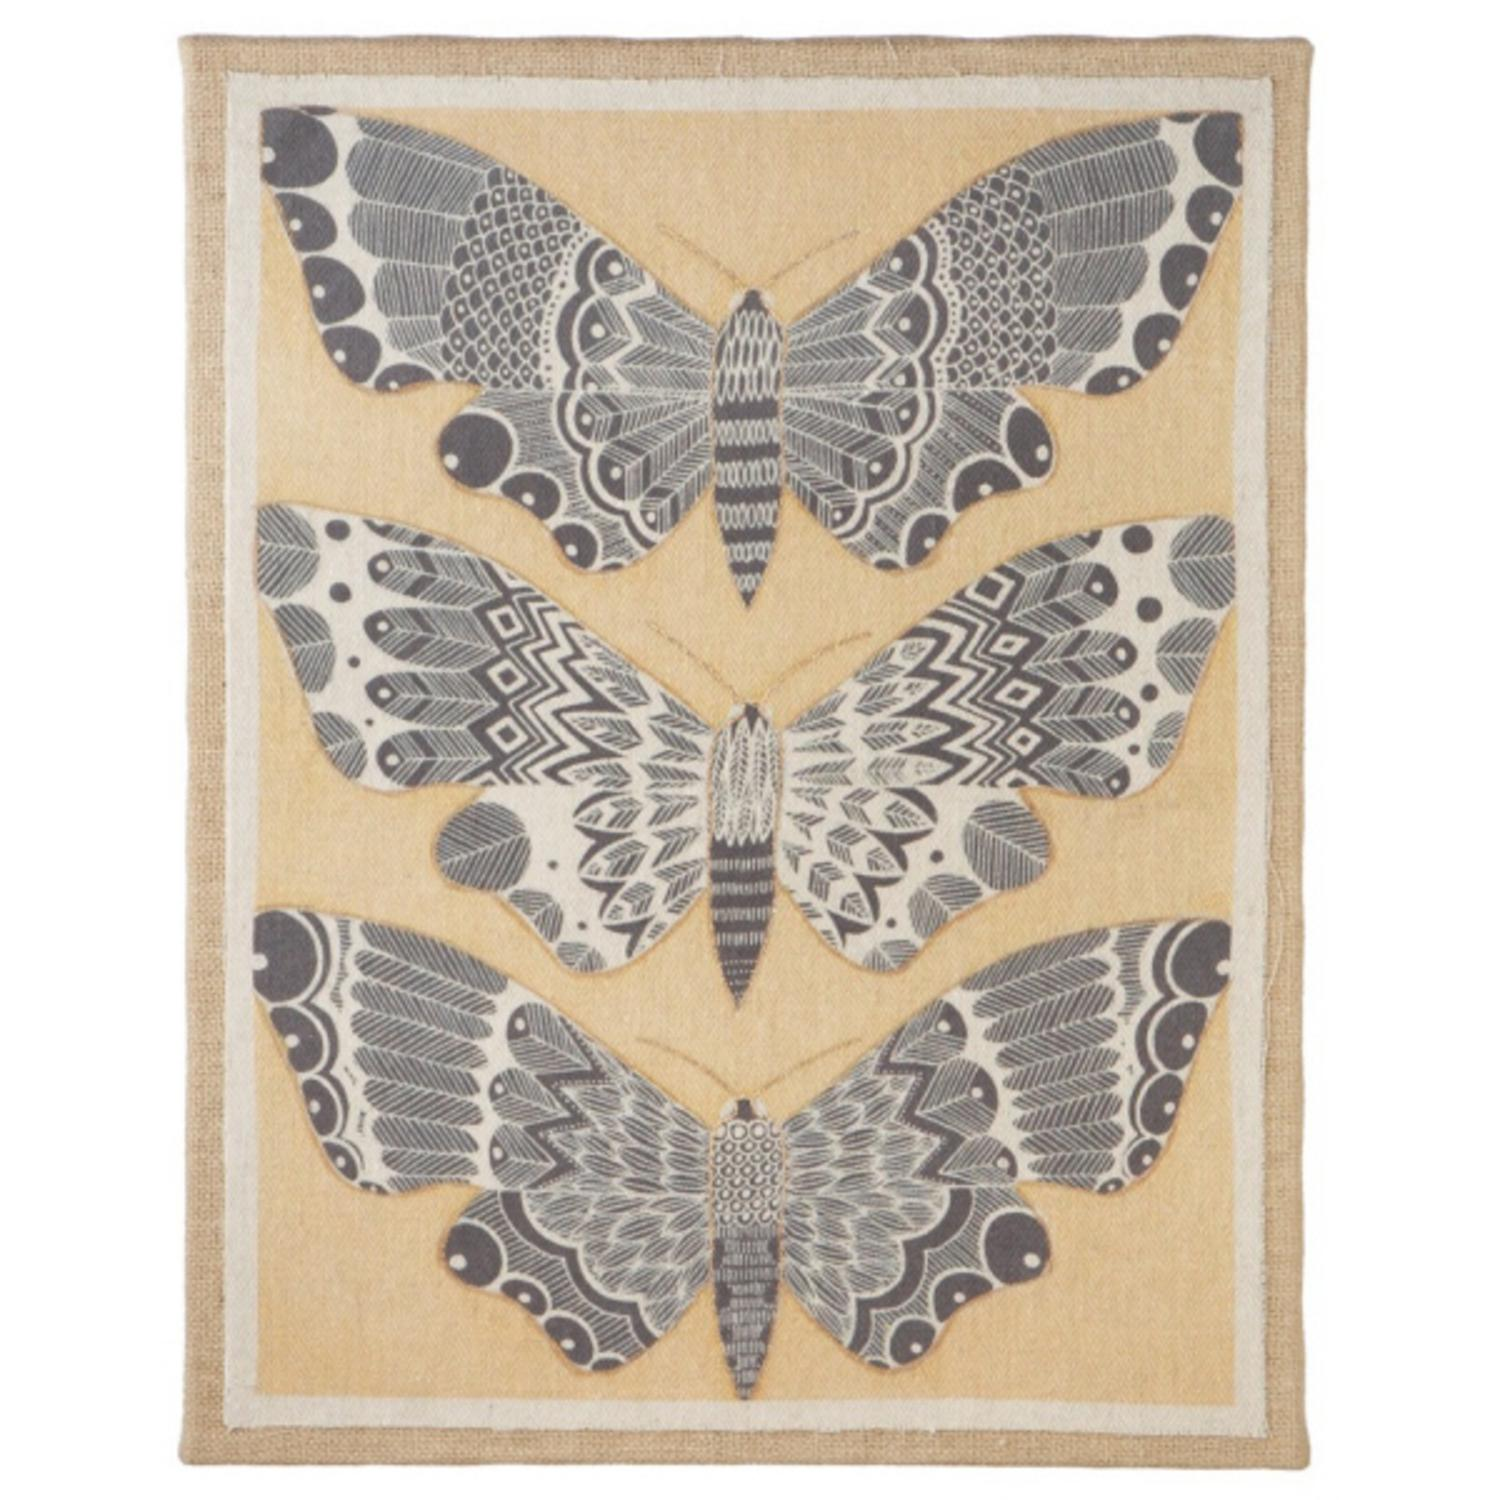 "22"" Rustic Nature Inspired Three Golden Moths Wall Art on Burlap"